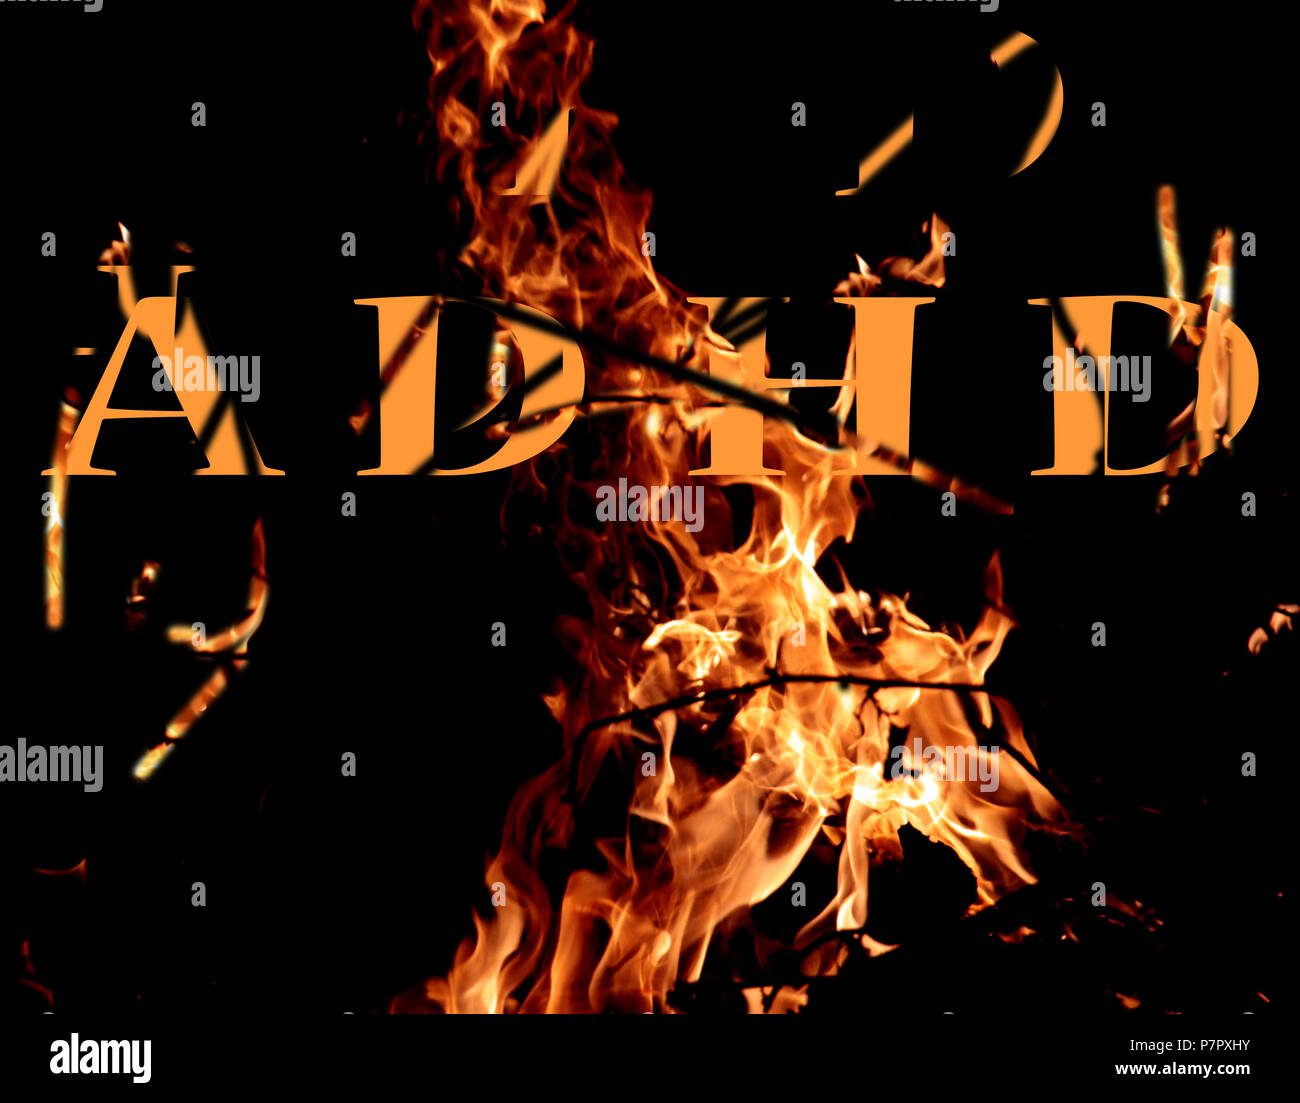 adhd letters on a fire background,image of a - Stock Image